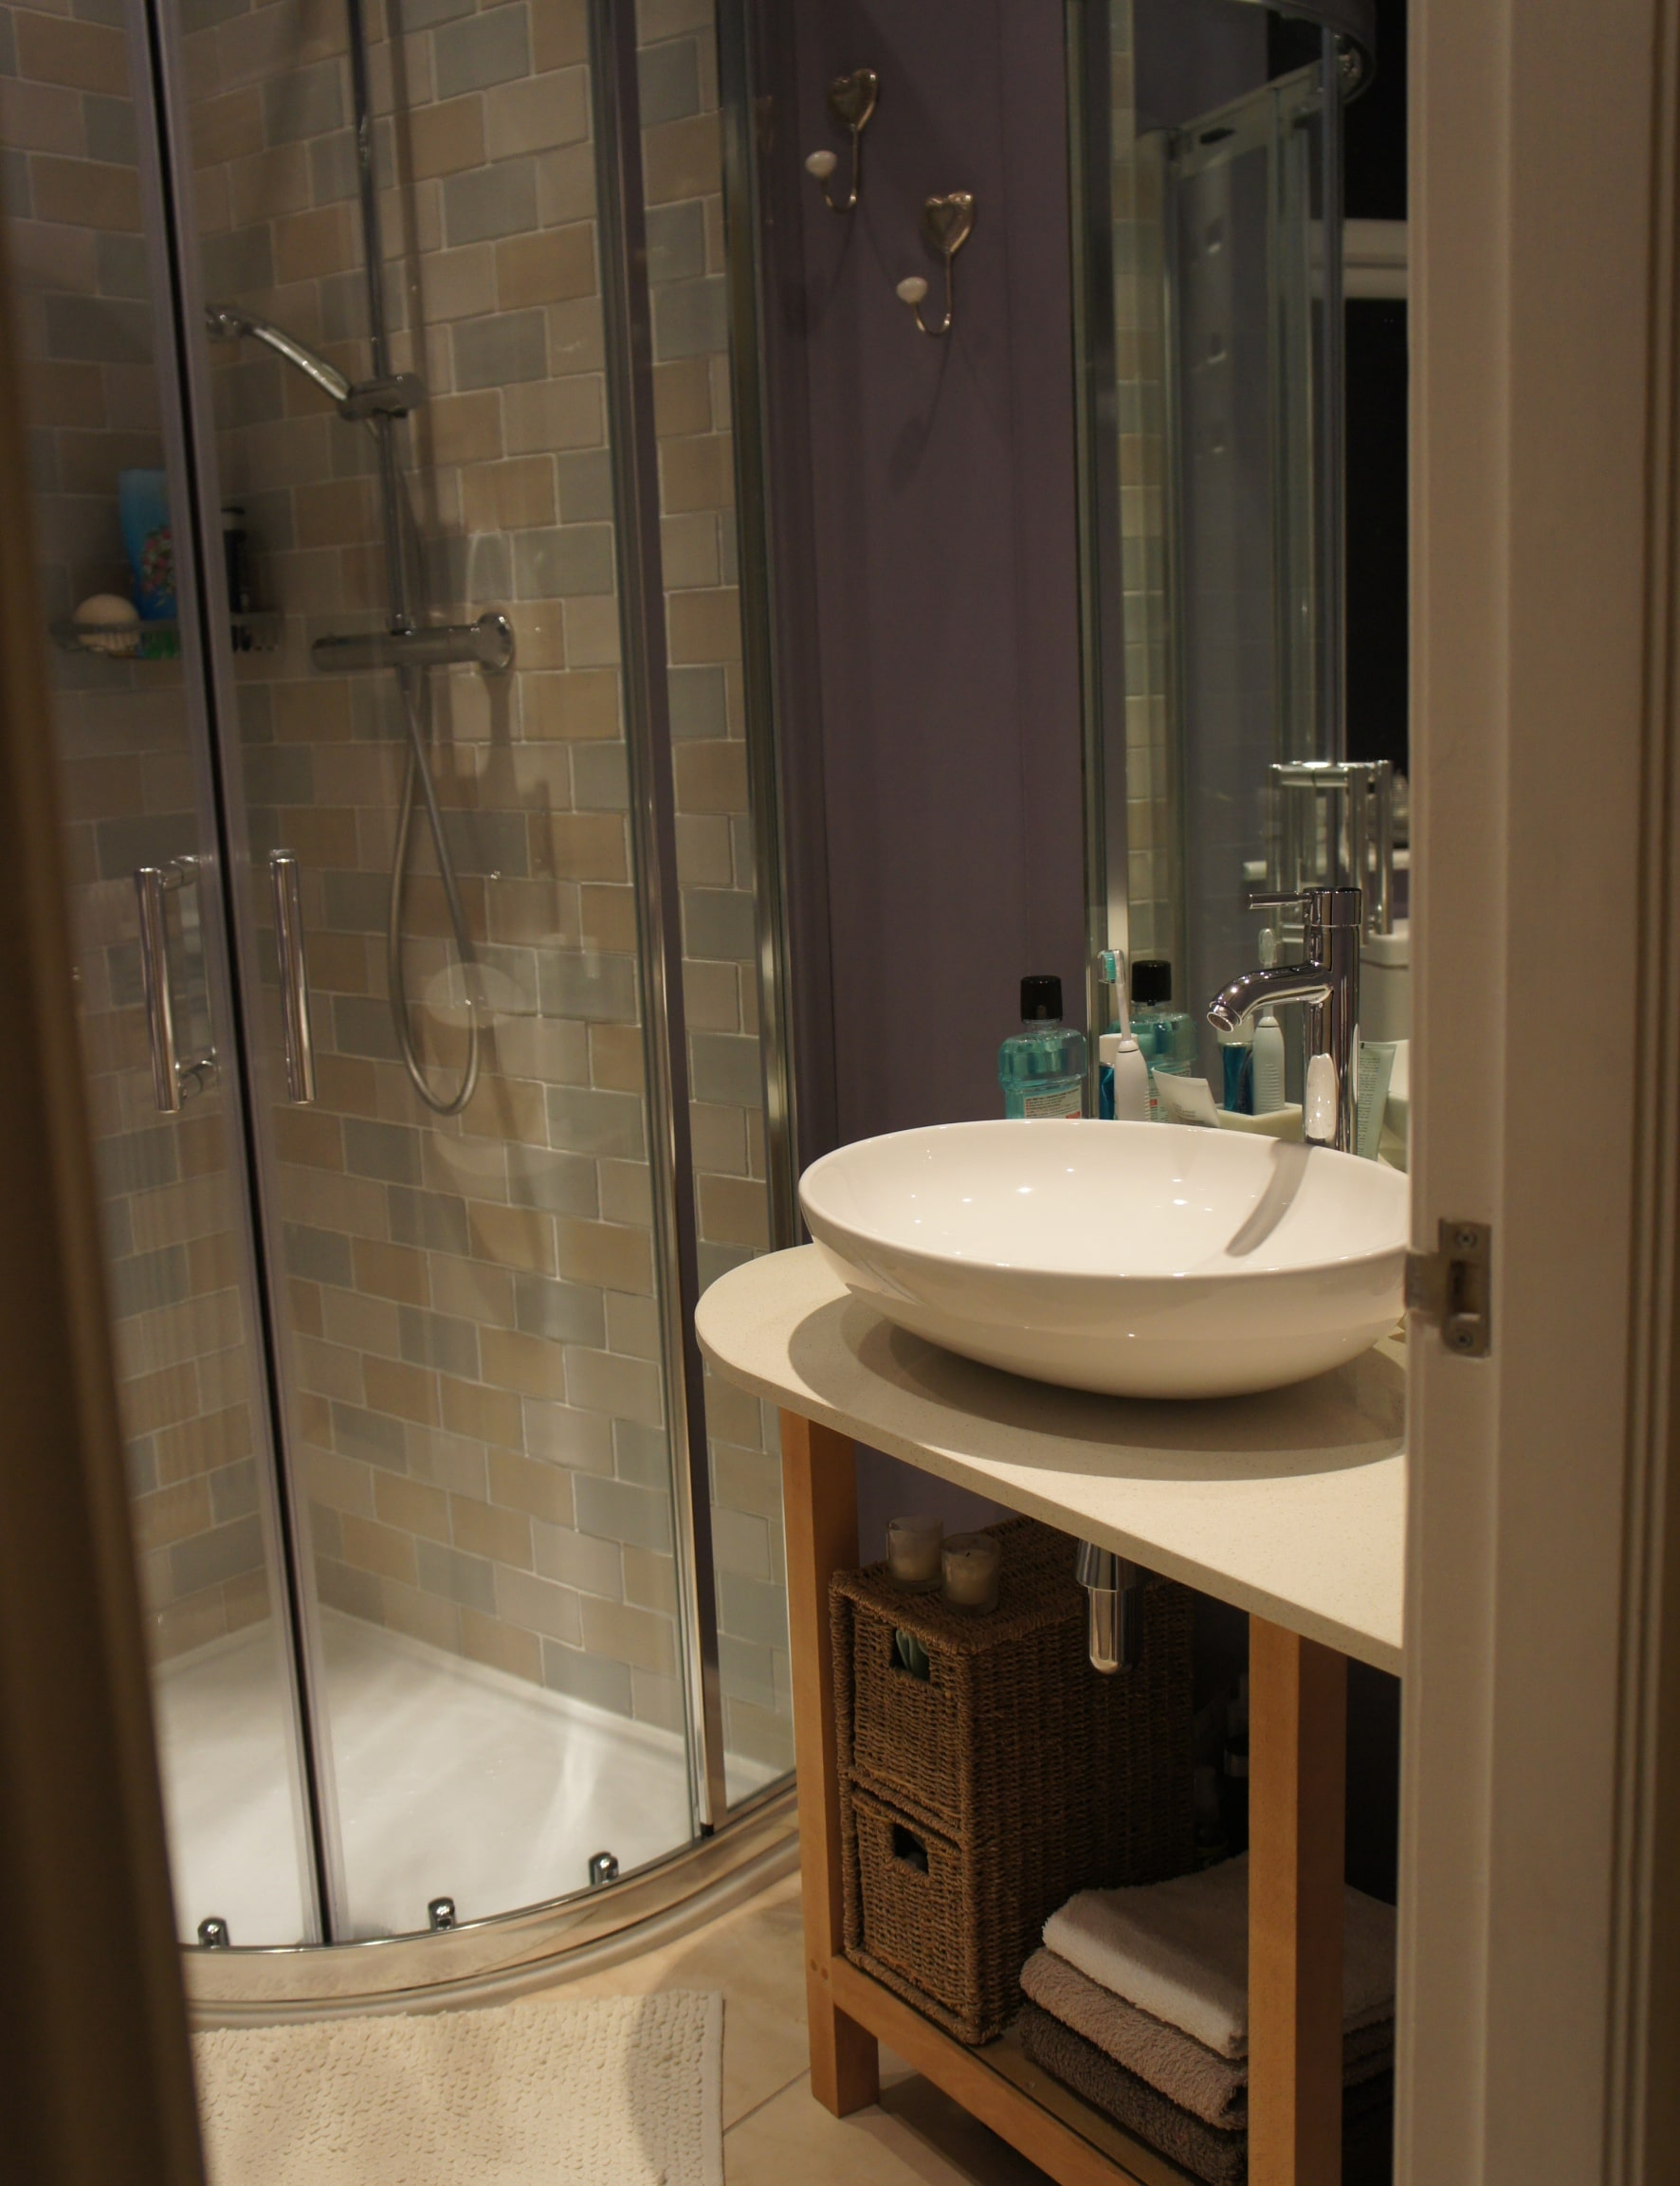 Bathrooms Transforming Homes For Over 30 Years Expert